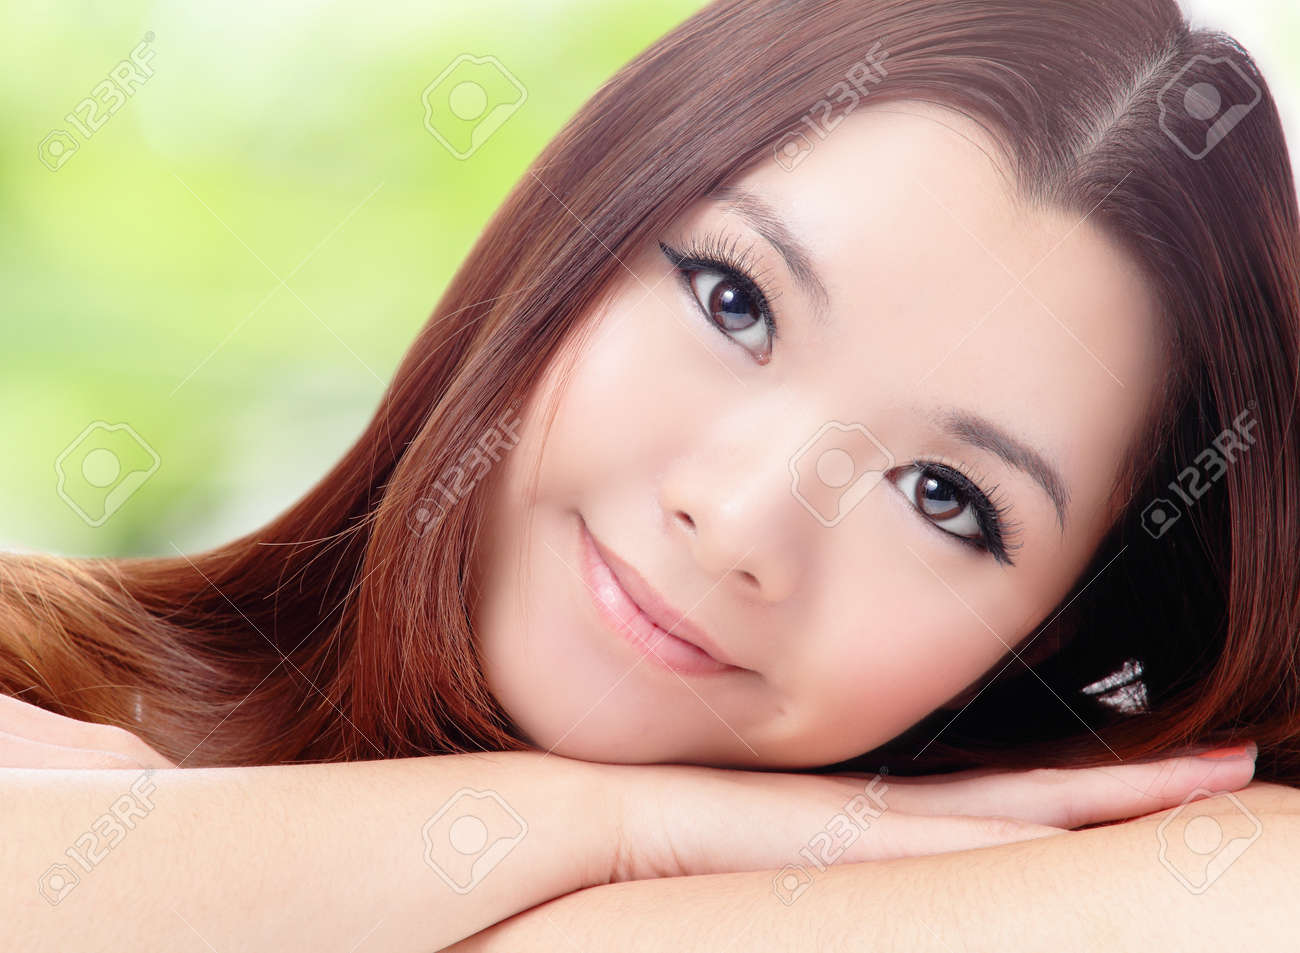 Close up of beautiful asian woman face with green background Stock Photo - 11937737